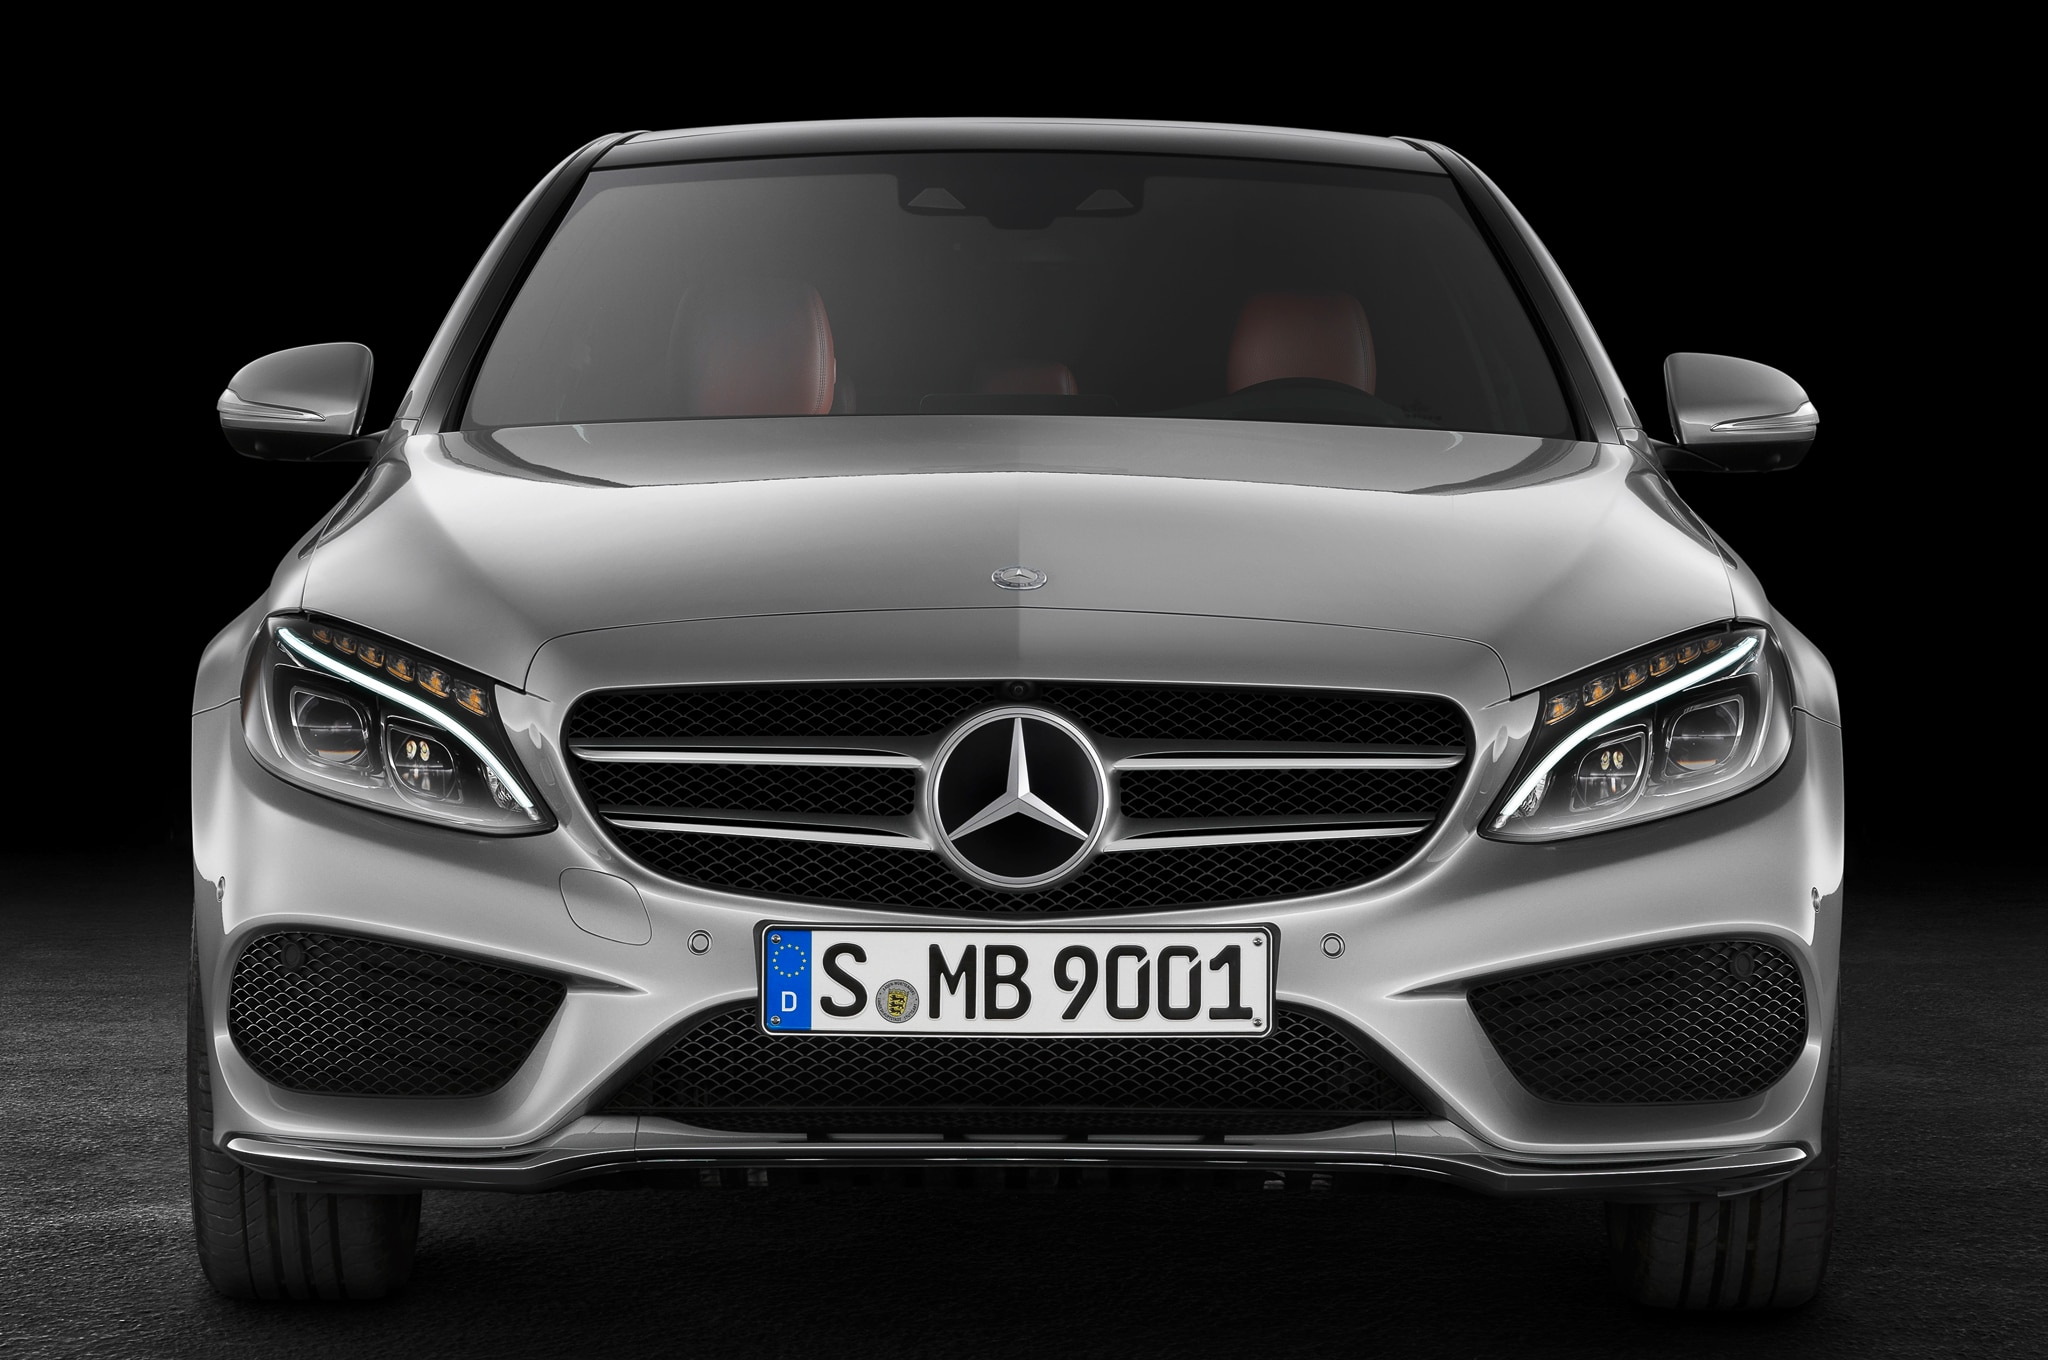 2015 mercedes benz c400 4matic review automobile magazine. Black Bedroom Furniture Sets. Home Design Ideas